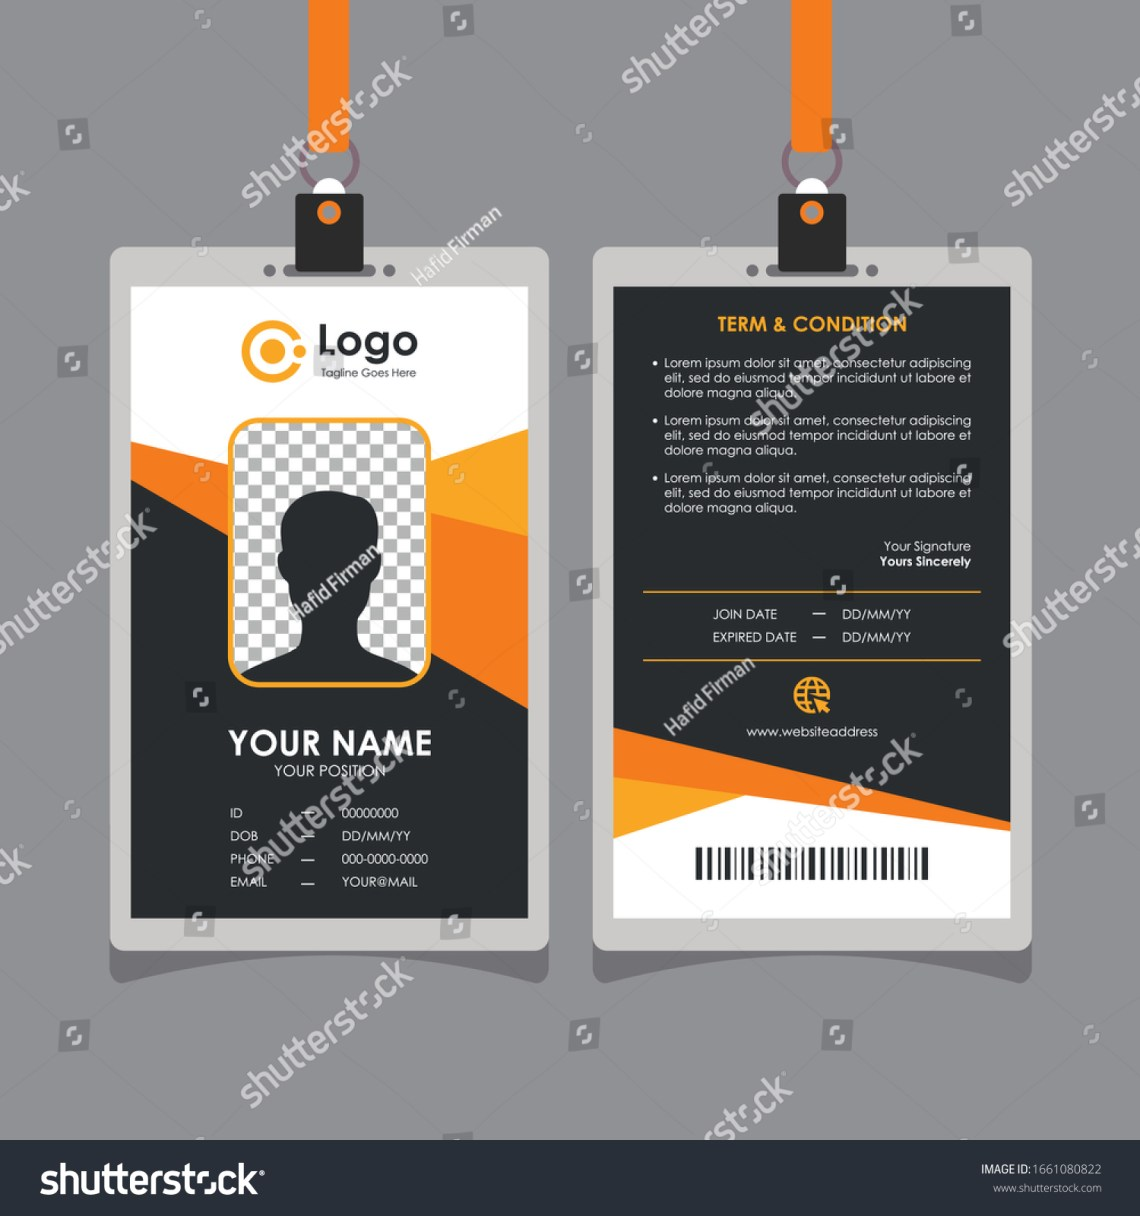 Download Restaurant Brand Identity Mockup Yellowimages